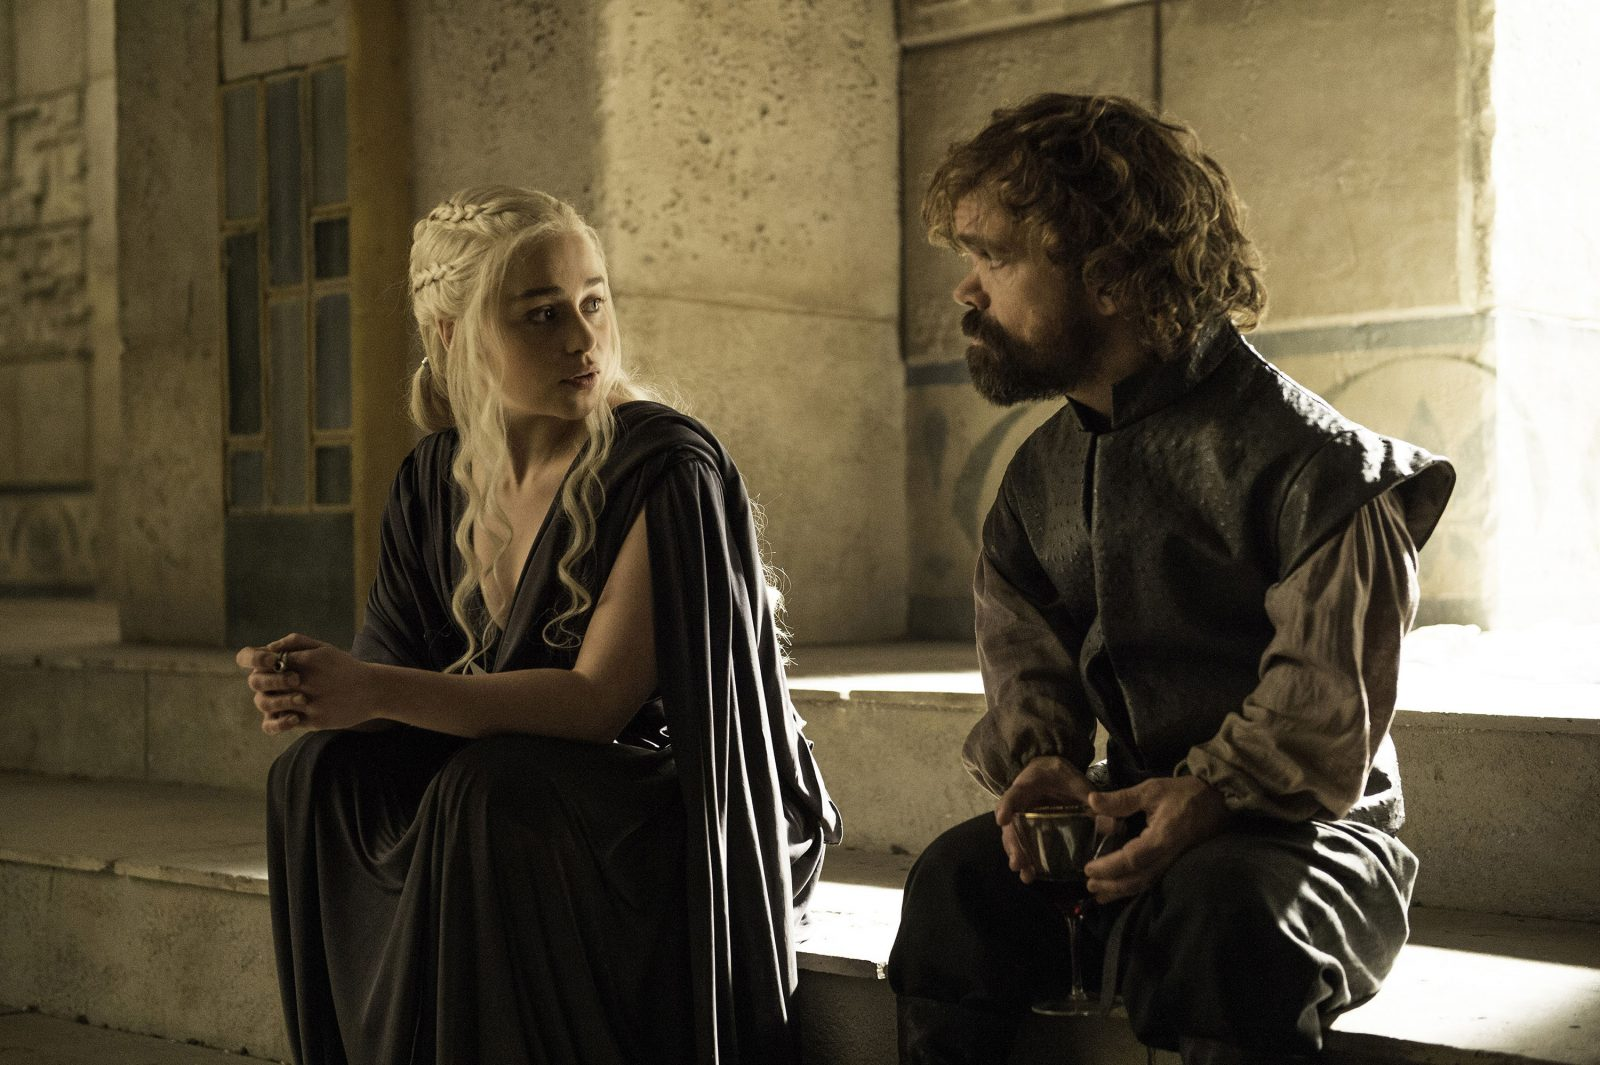 Emilia Clarke as Daenerys Targaryen and Peter Dinklage as Tyrion Lannister in a scene from 'Game of Thrones.' (Helen Sloan/HBO/TNS)